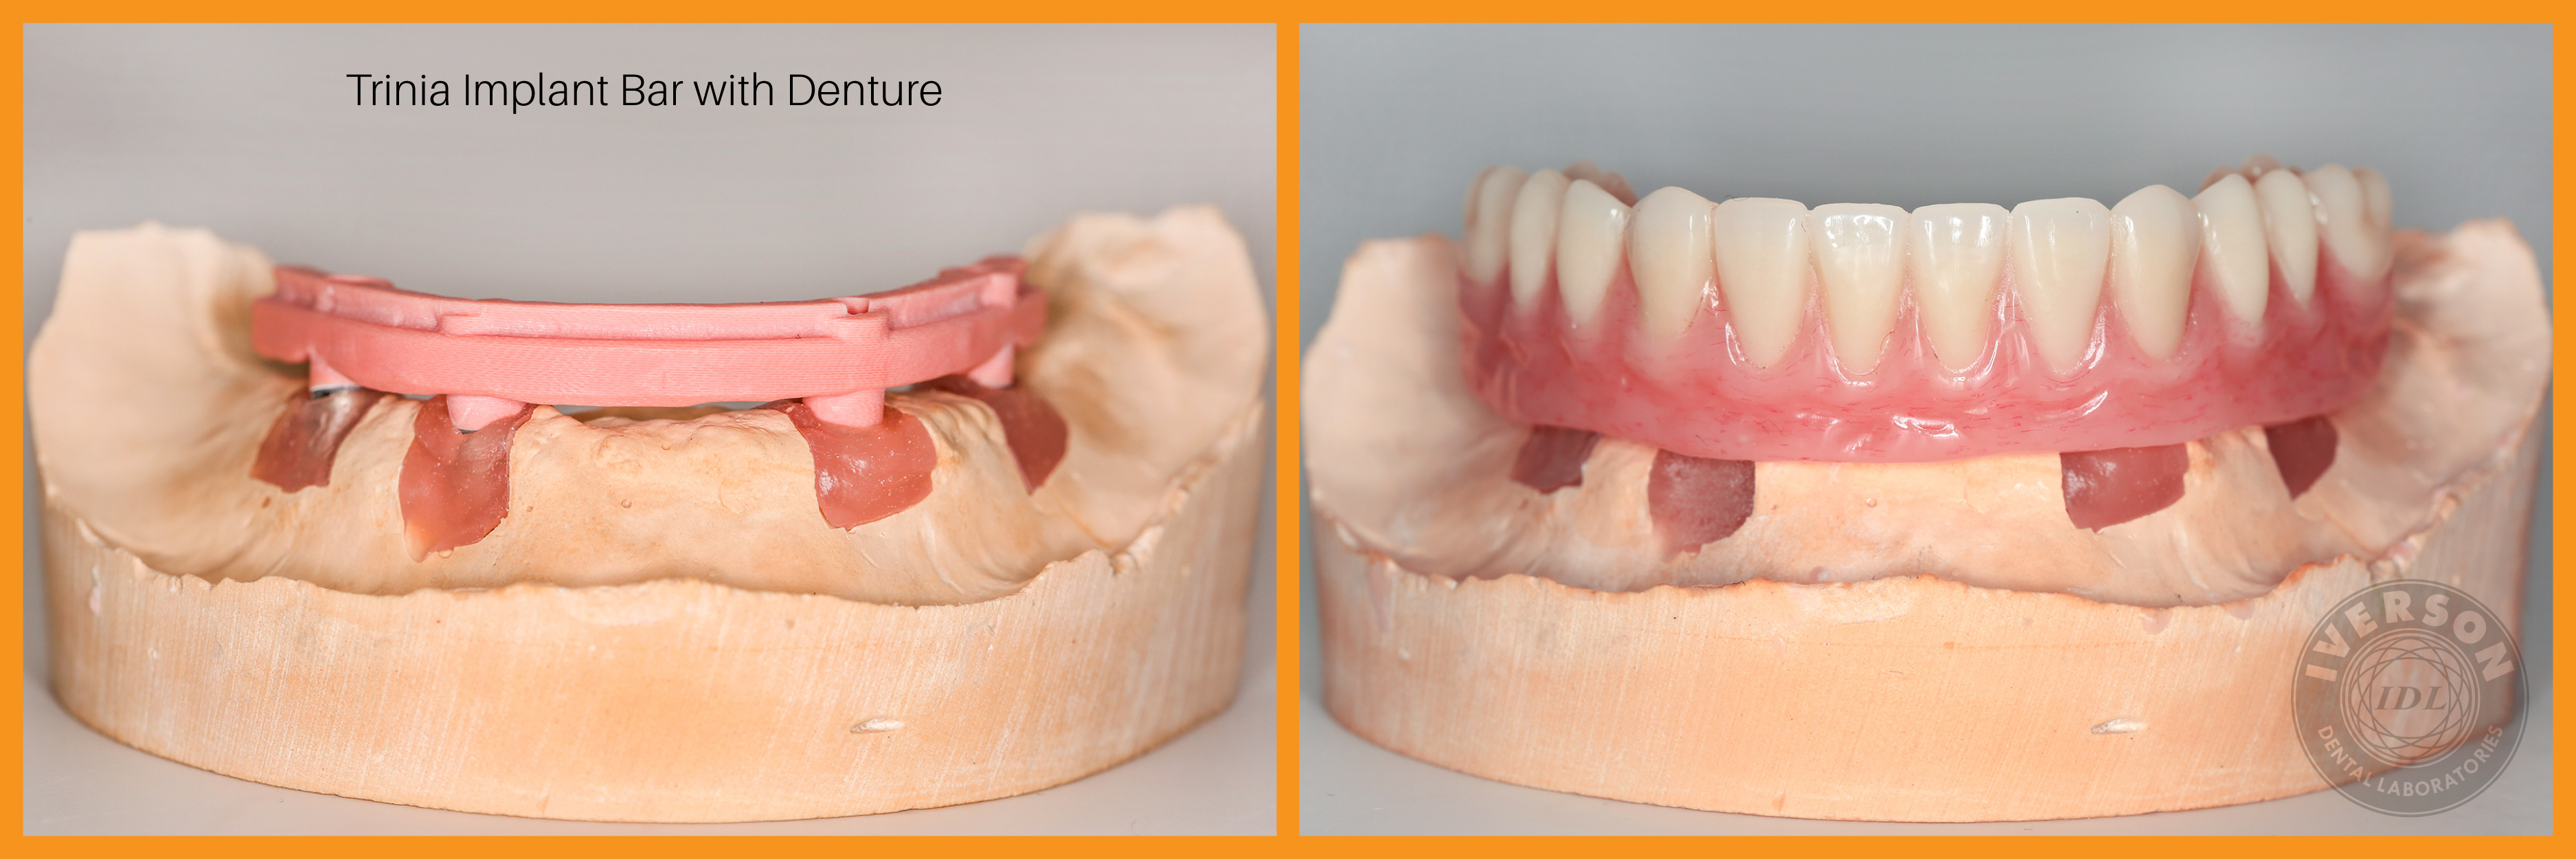 Trinia Implant Bar with Denture